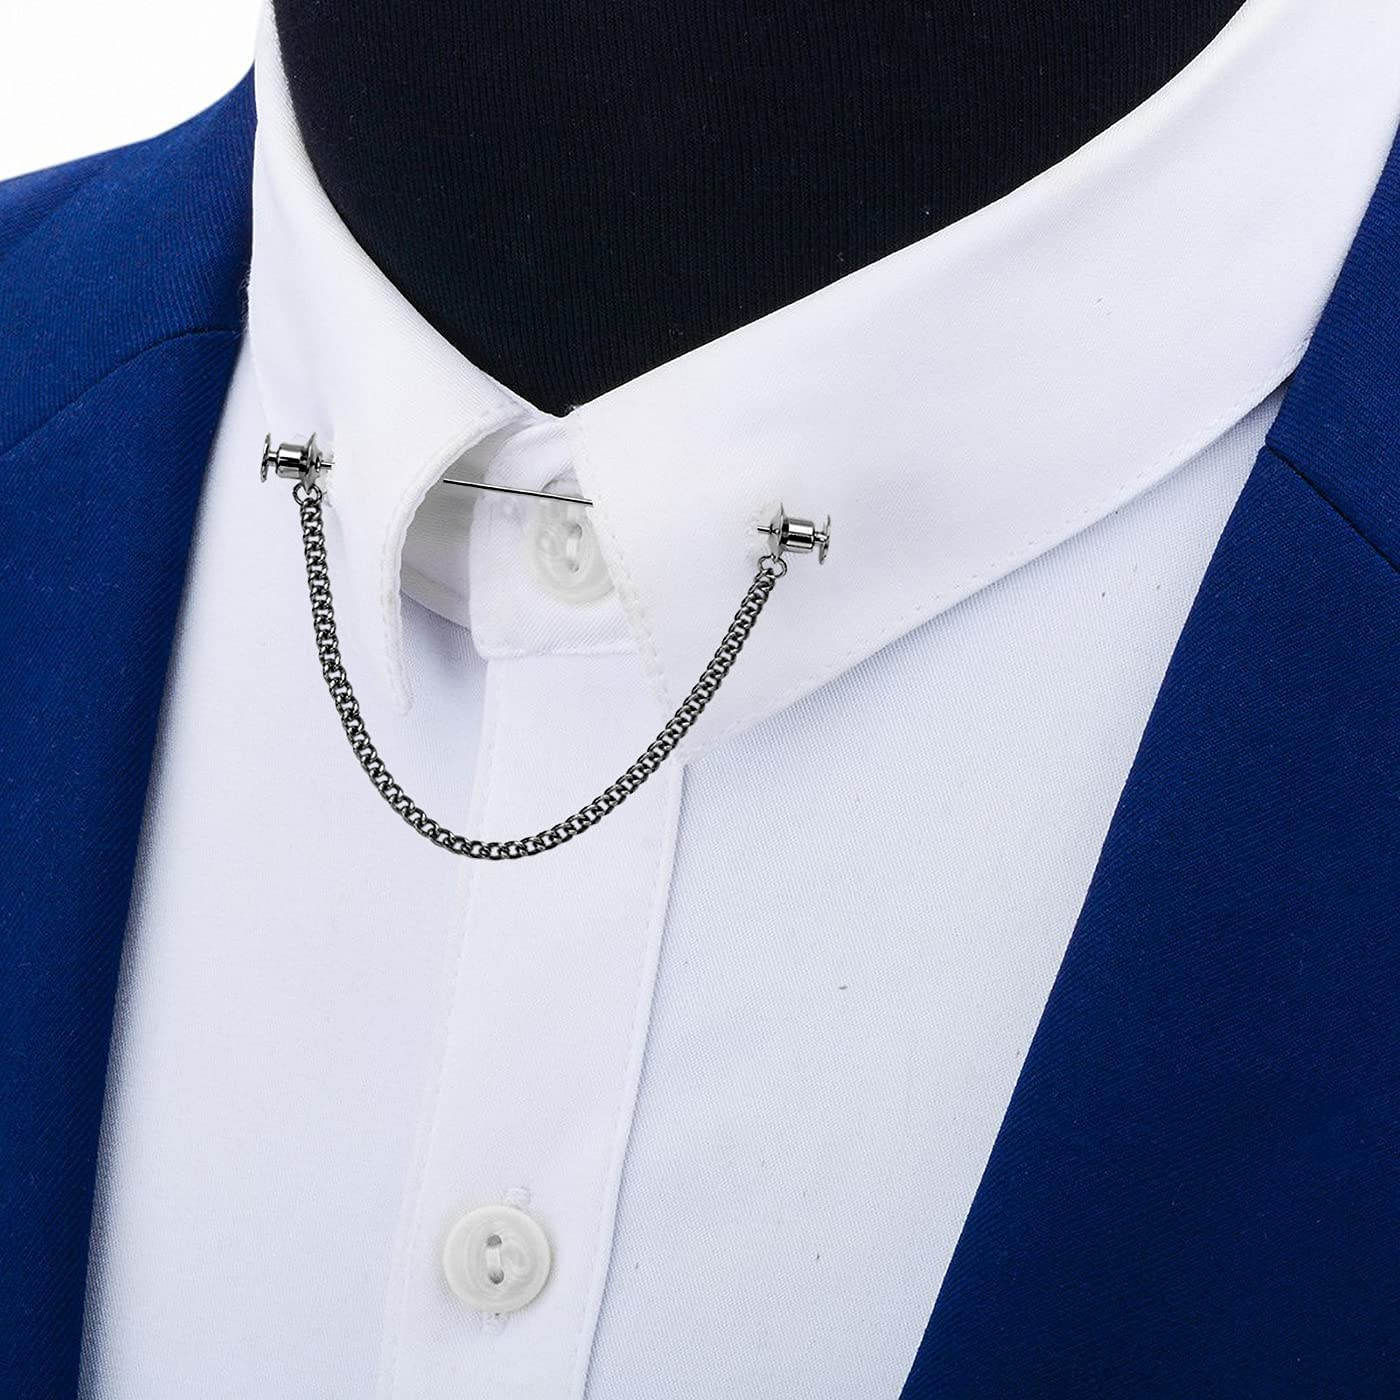 VVCome Men's Metal Tassel Chain Collar Pins Suit Brooch Tie Pin Shirt Accessories with Gift Box